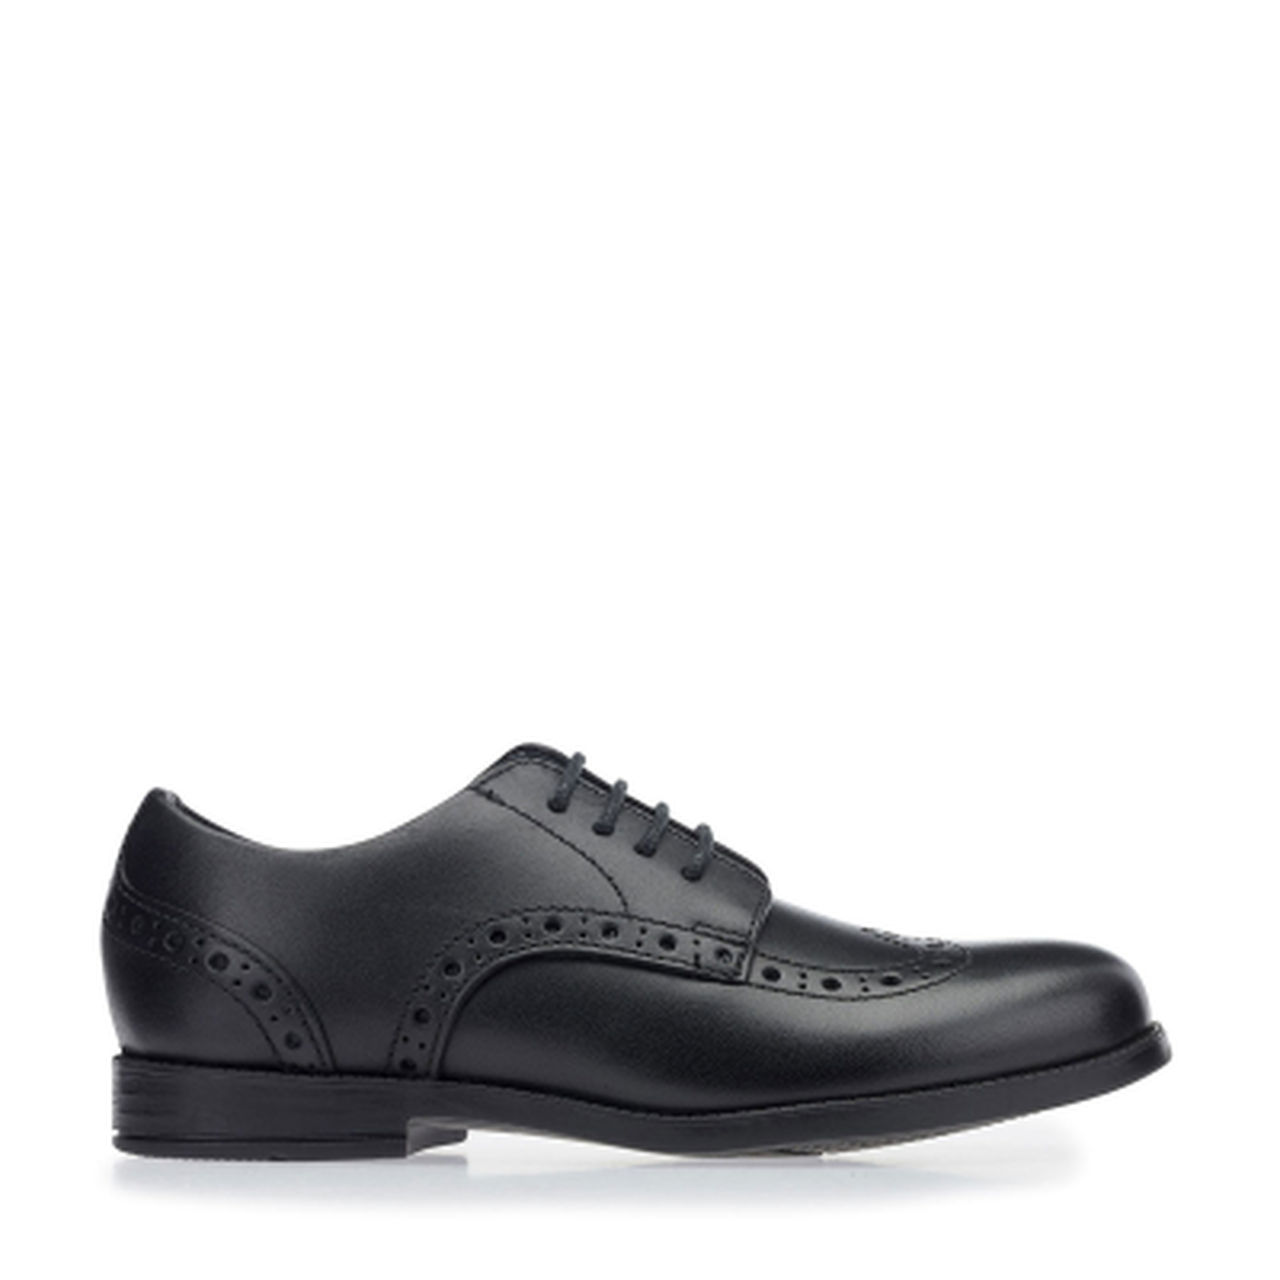 start-rite brogue pri black leather